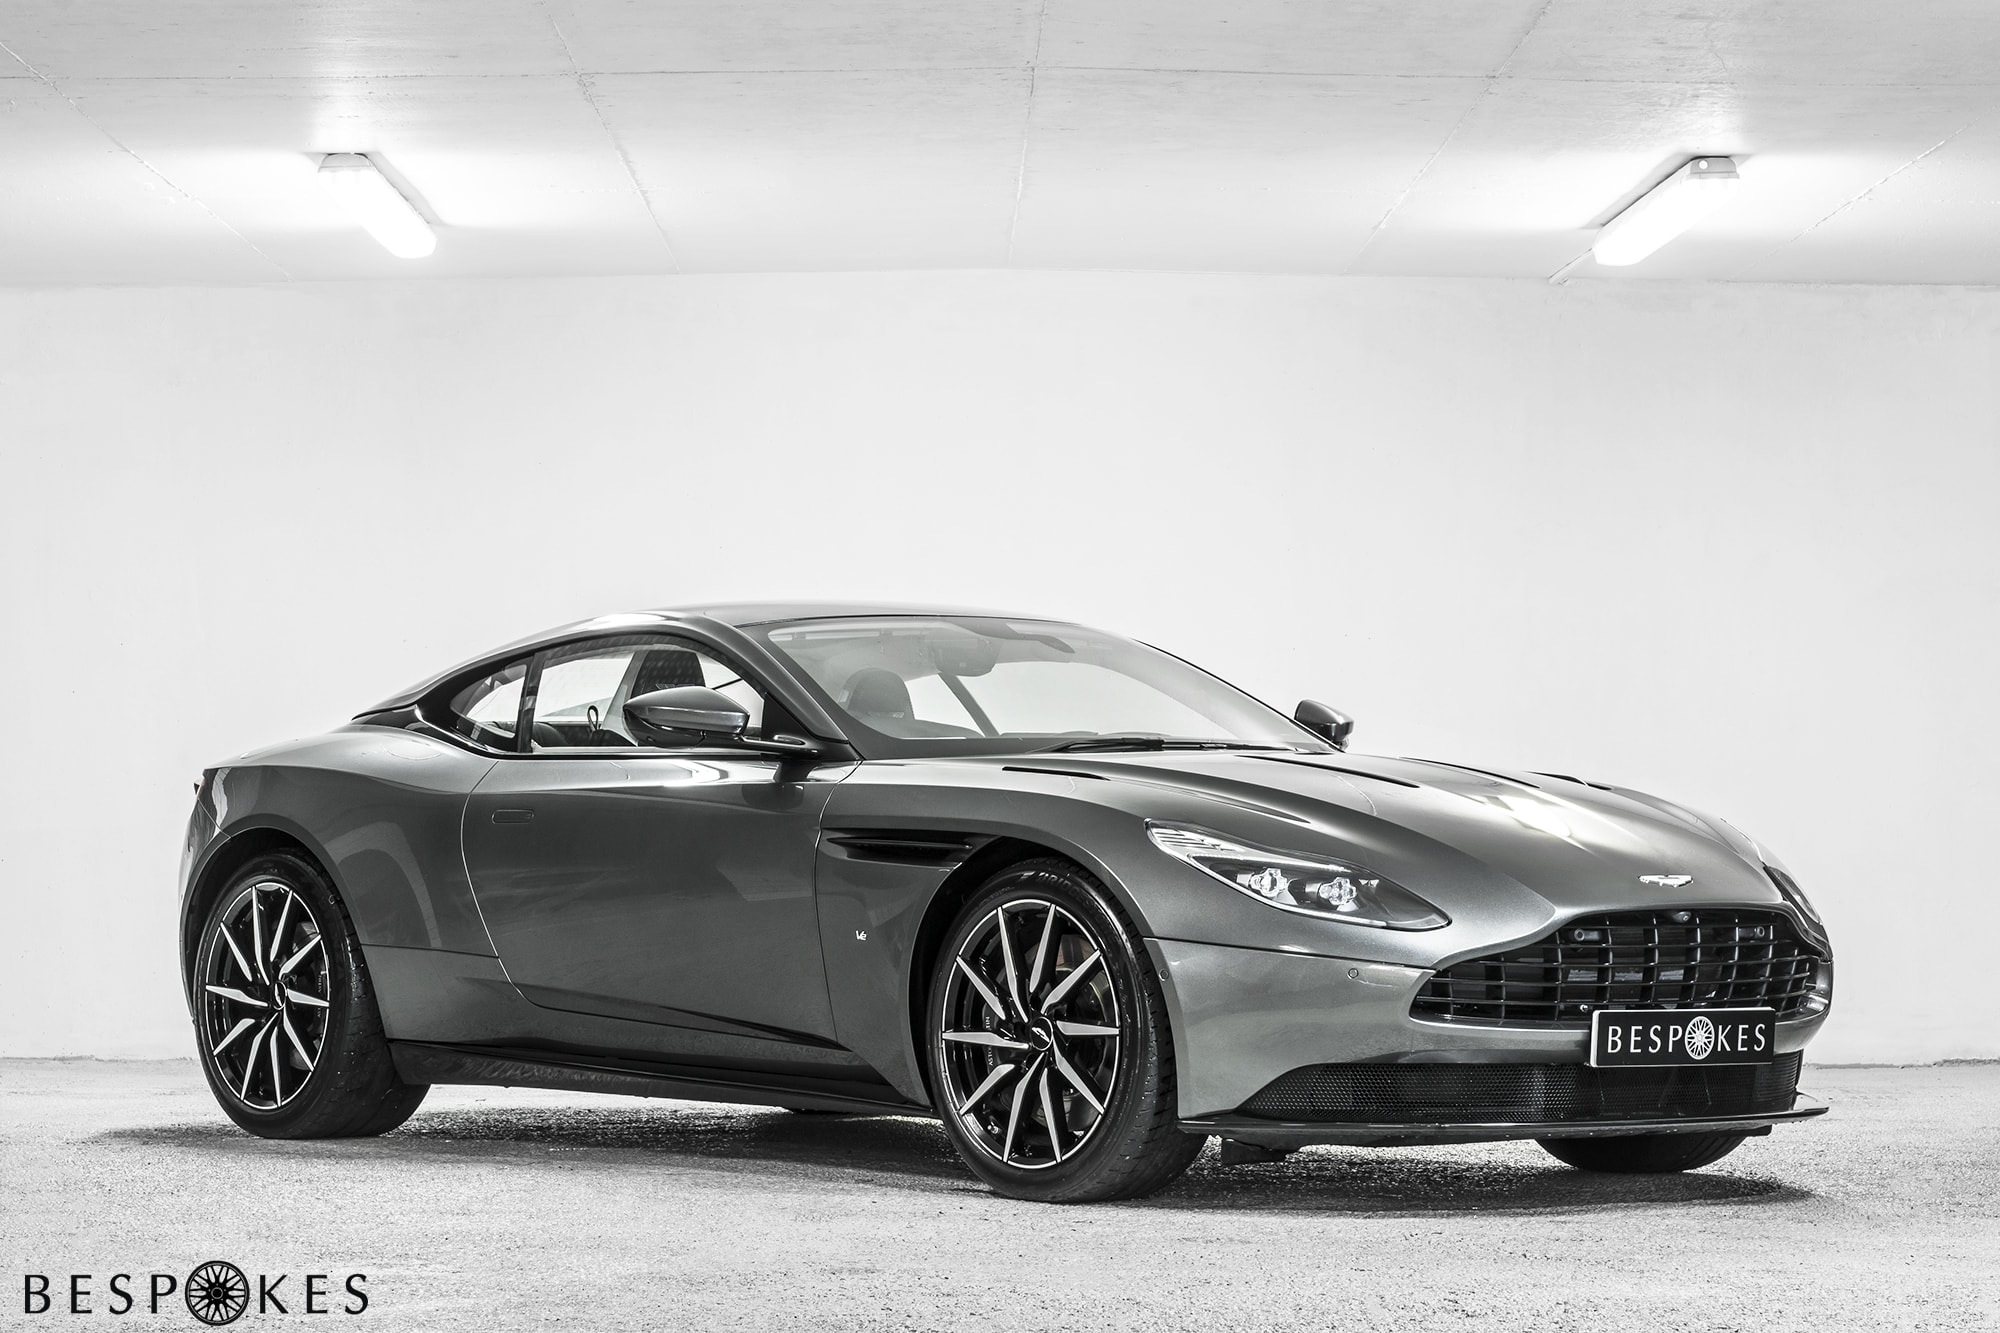 Aston Martin DB11 Hire